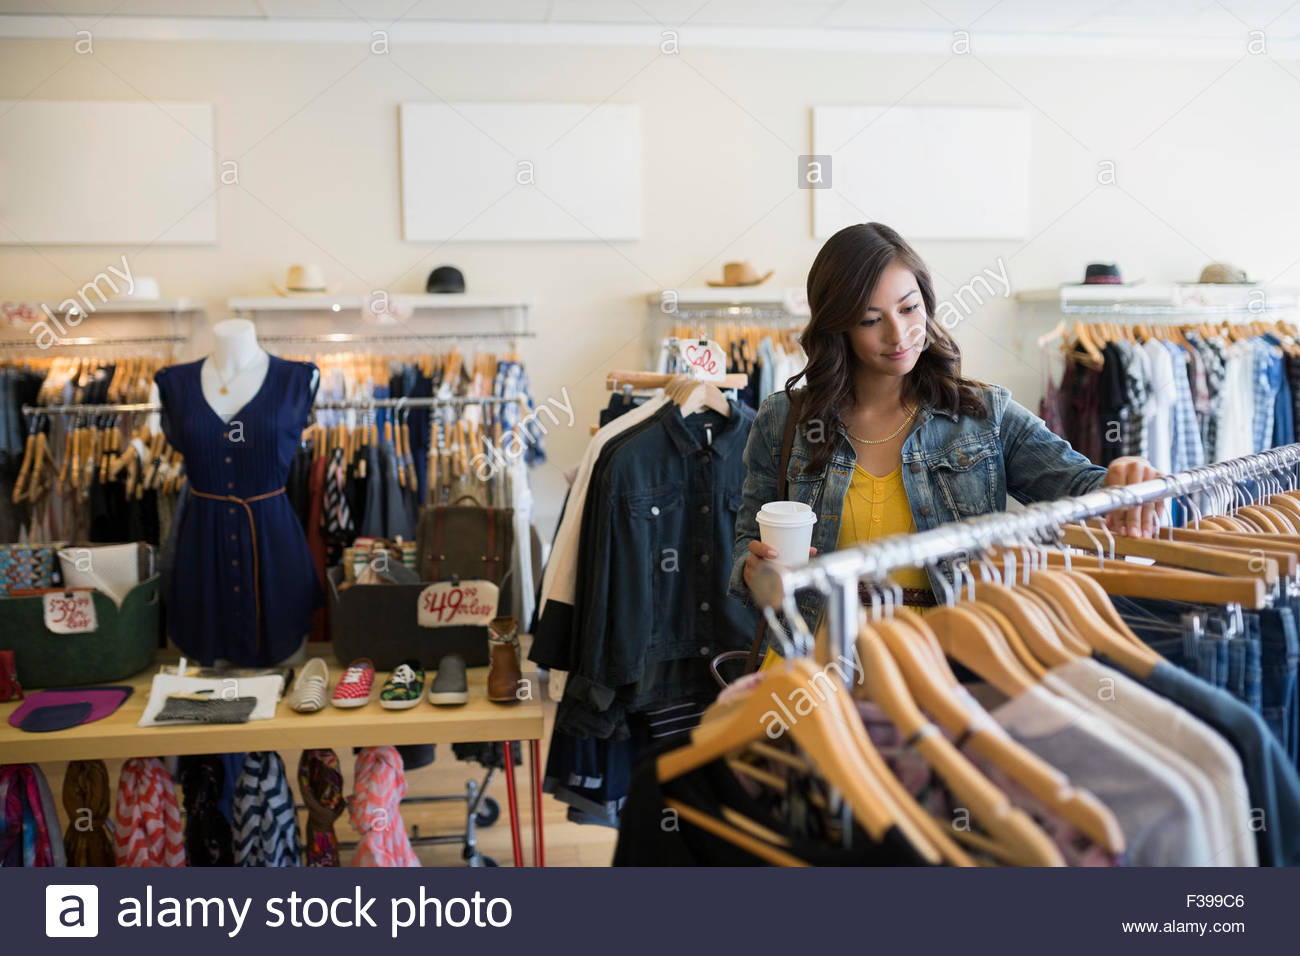 3bd6f82bdcdef Woman browsing clothing in shop Stock Photo: 88100774 - Alamy